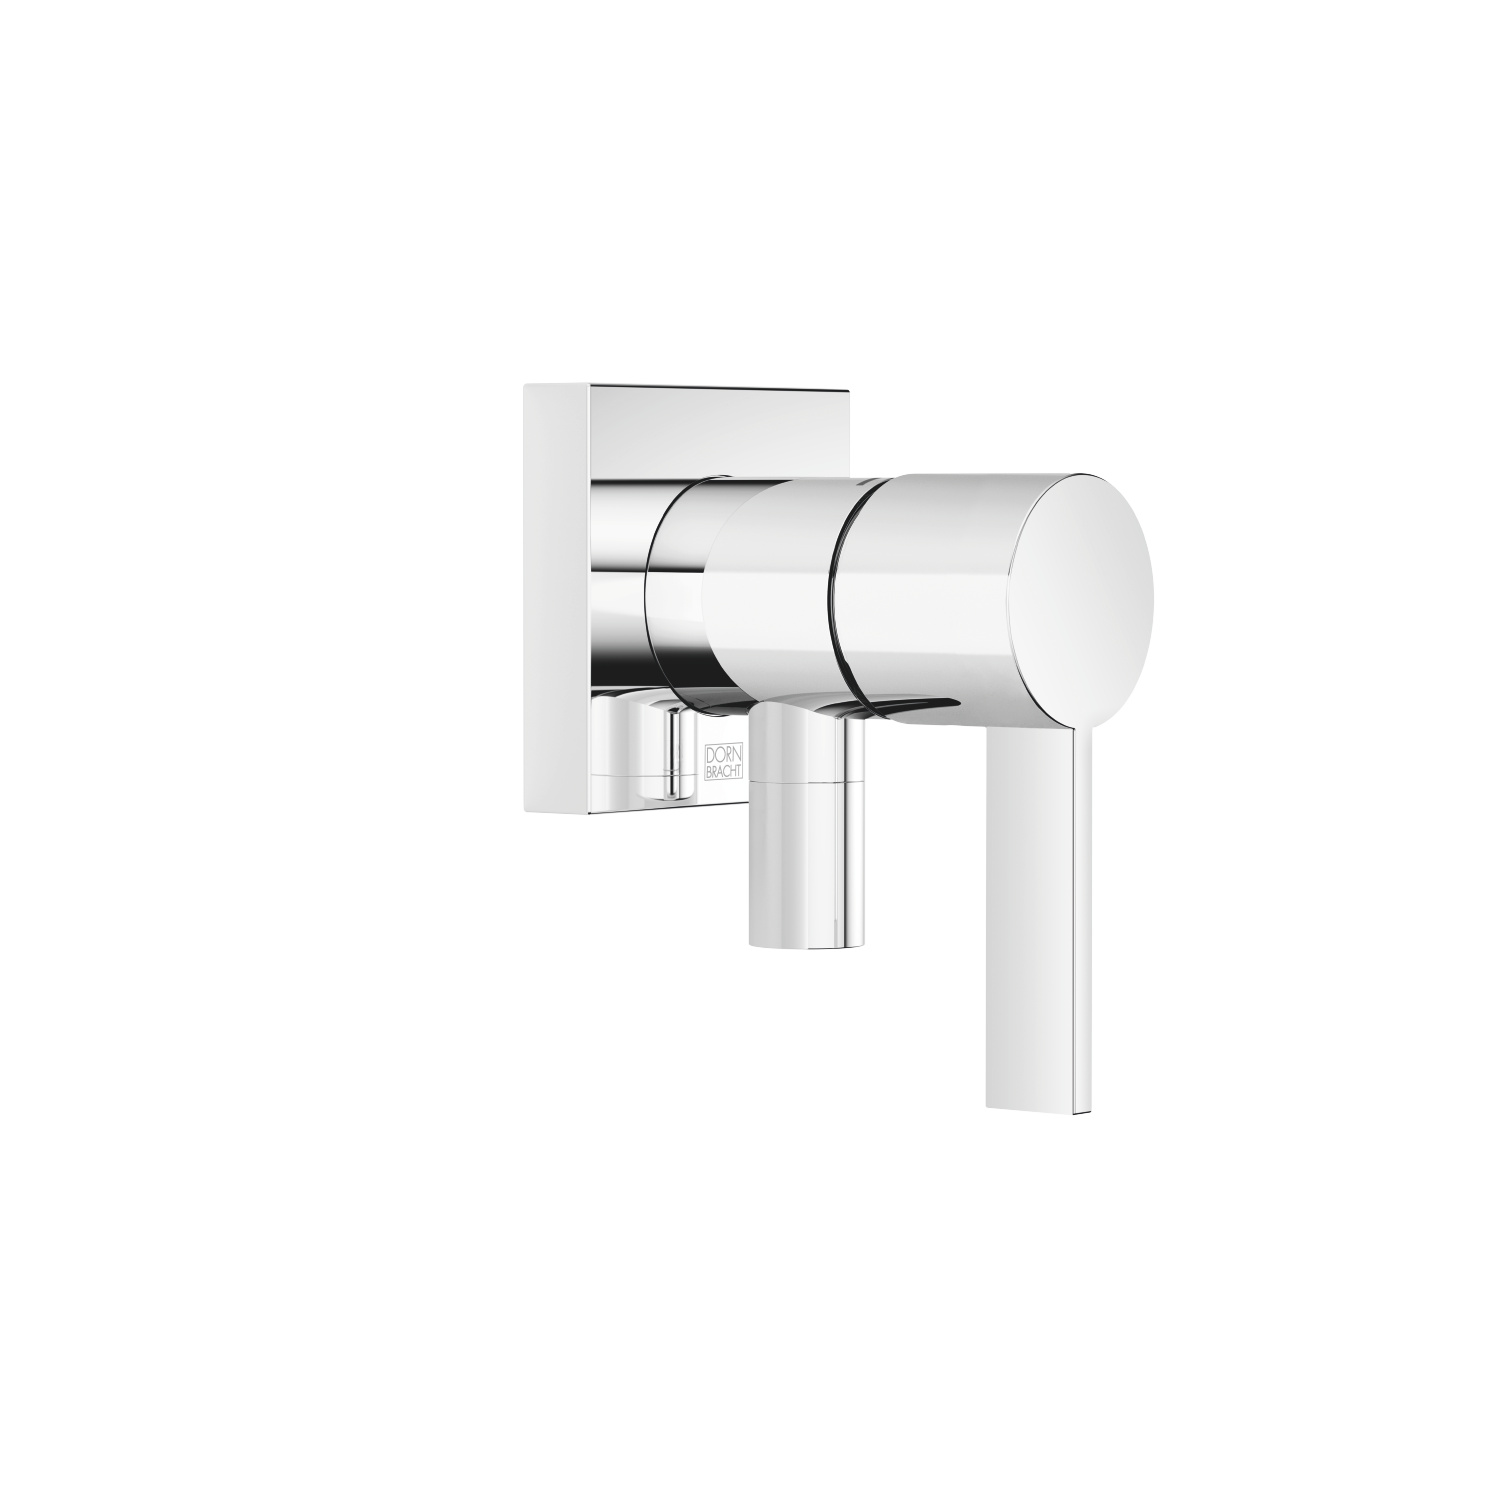 FM one-handed regulator with cover plate With integrated shower connection - polished chrome